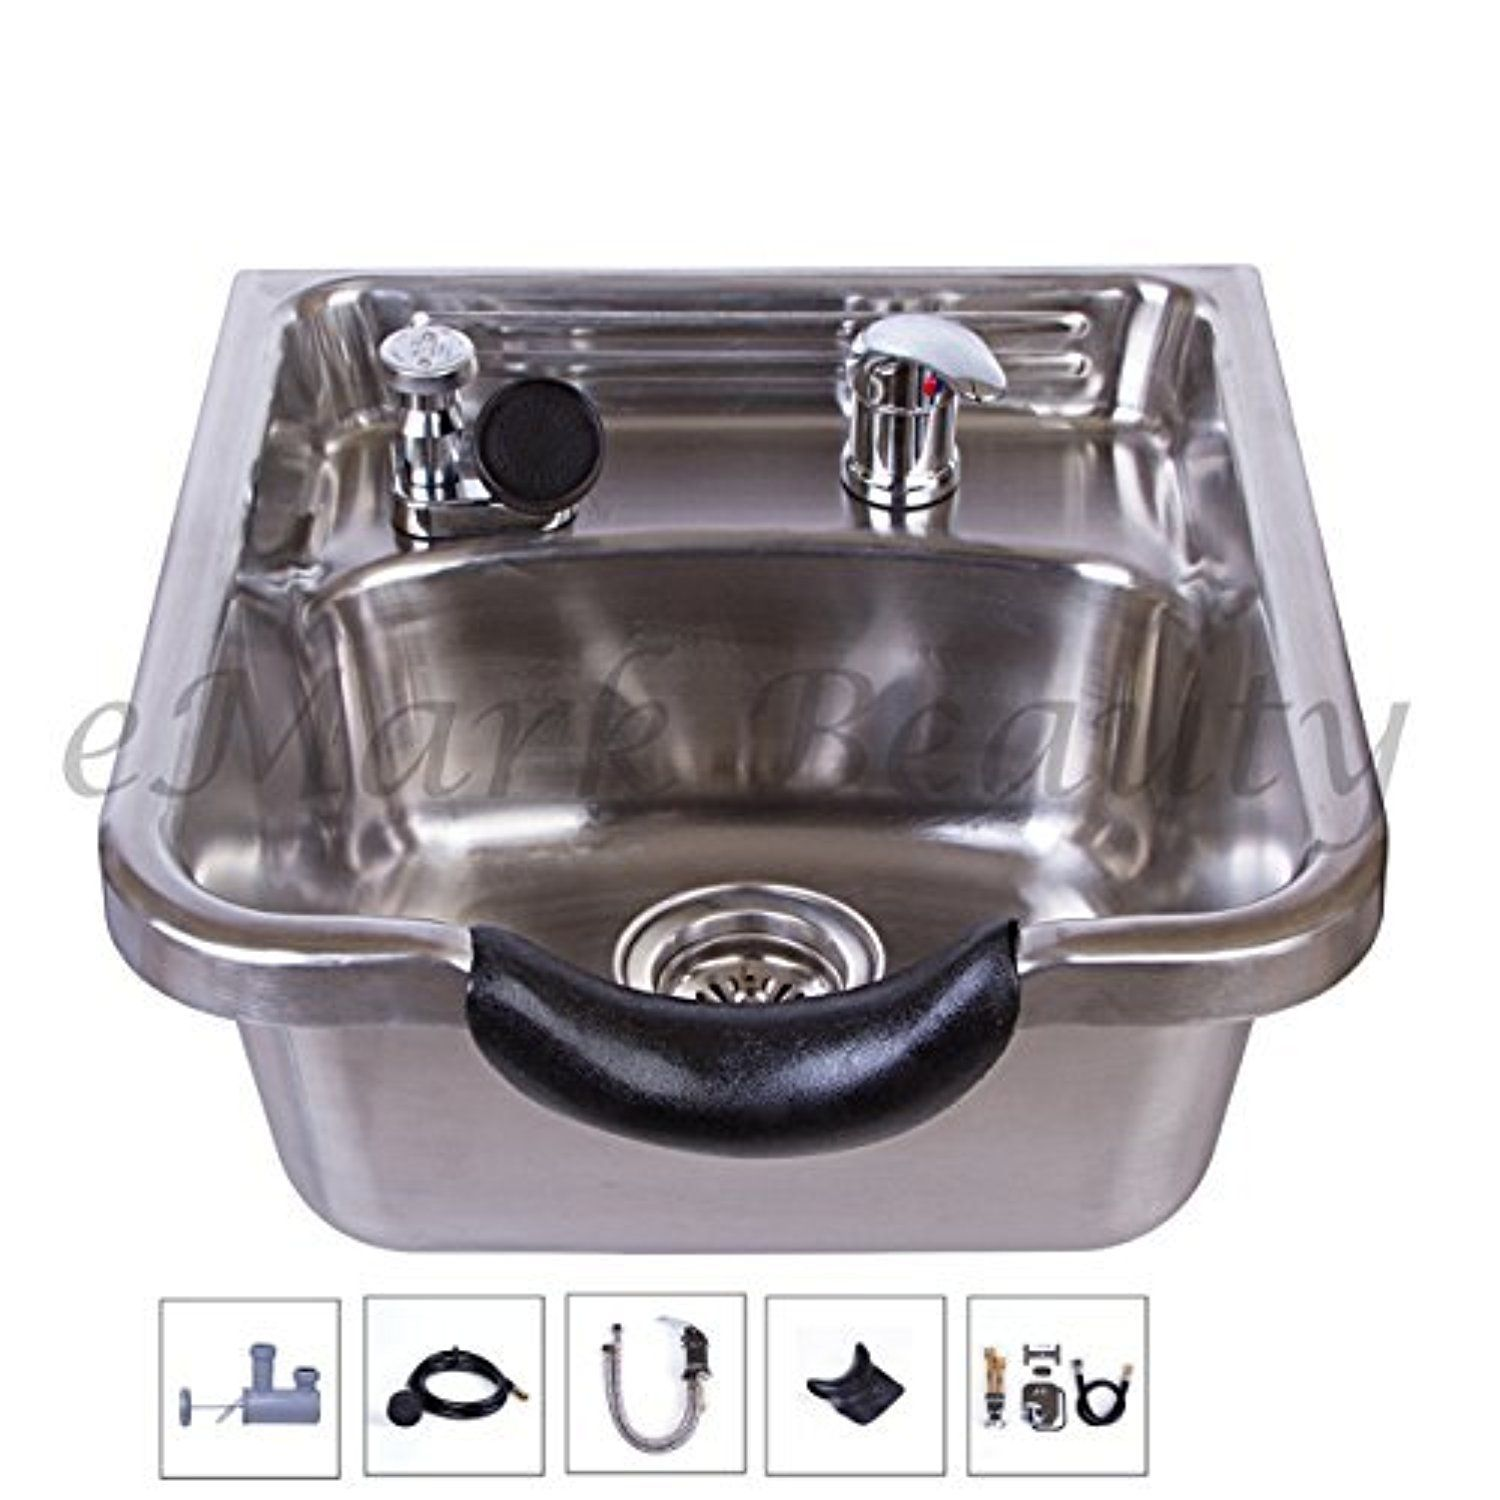 Stainless Steel Brushed Shampoo Bowl Salon Sink for Barber or Beauty ...